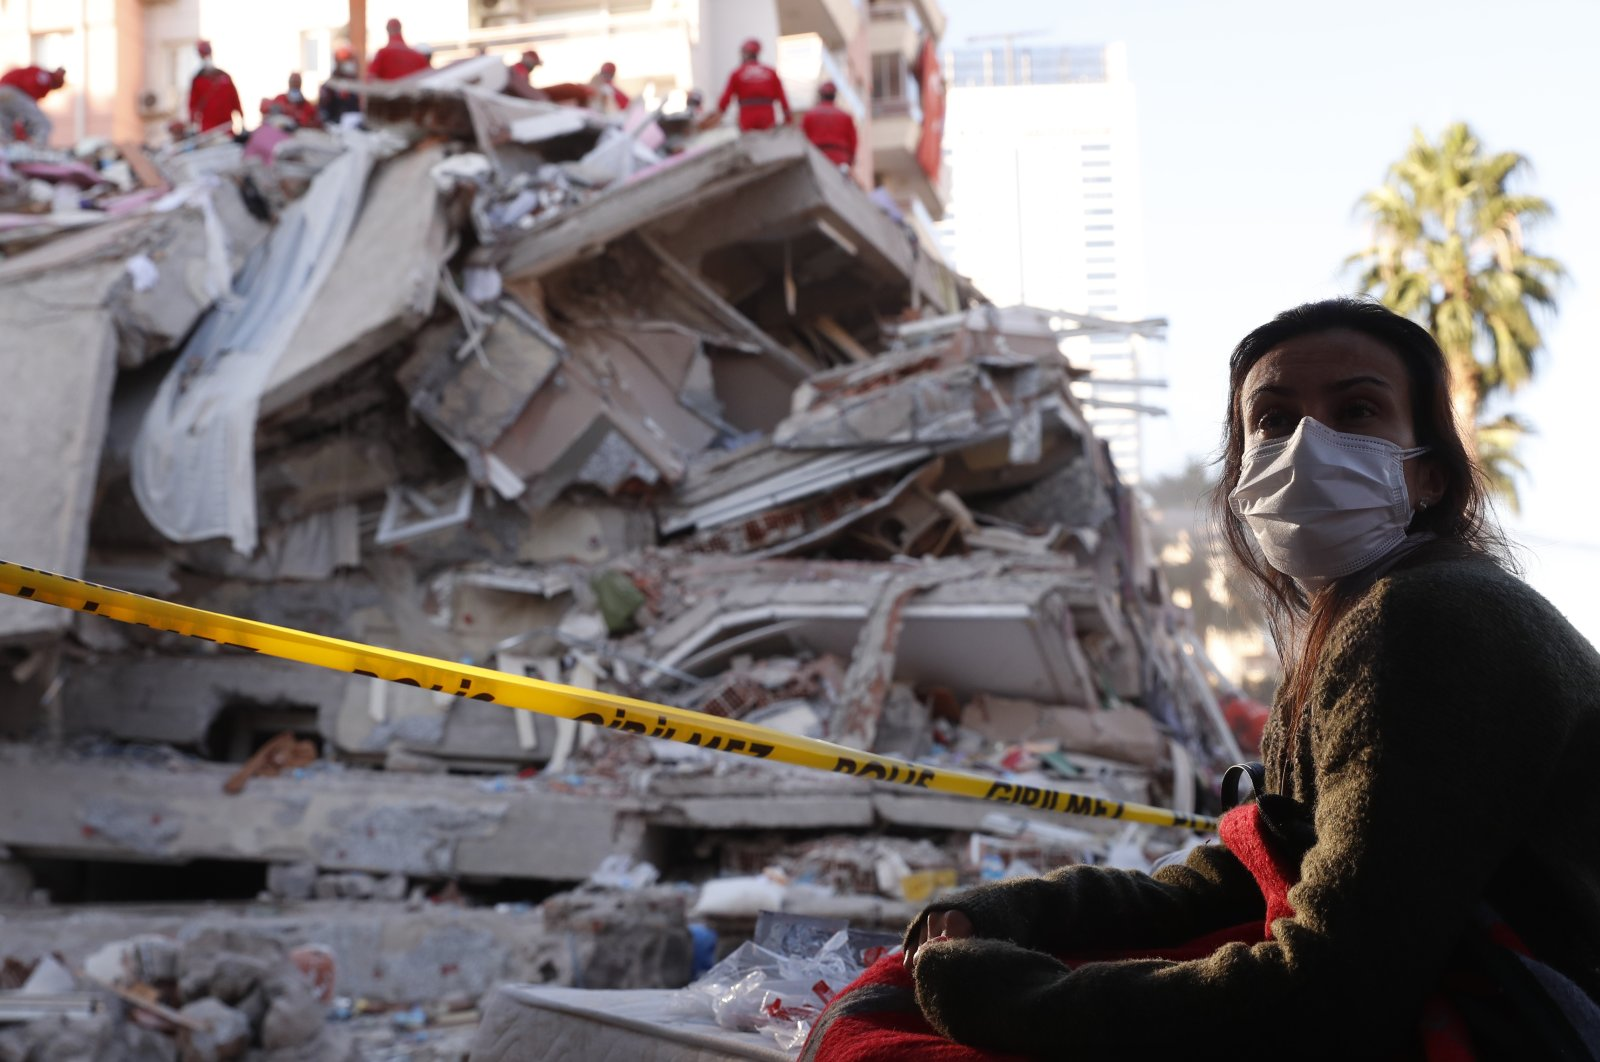 A local resident watches as rescue teams search for survivors in the debris of a collapsed building in Izmir, Turkey, Oct. 31, 2020. (AP Photo)